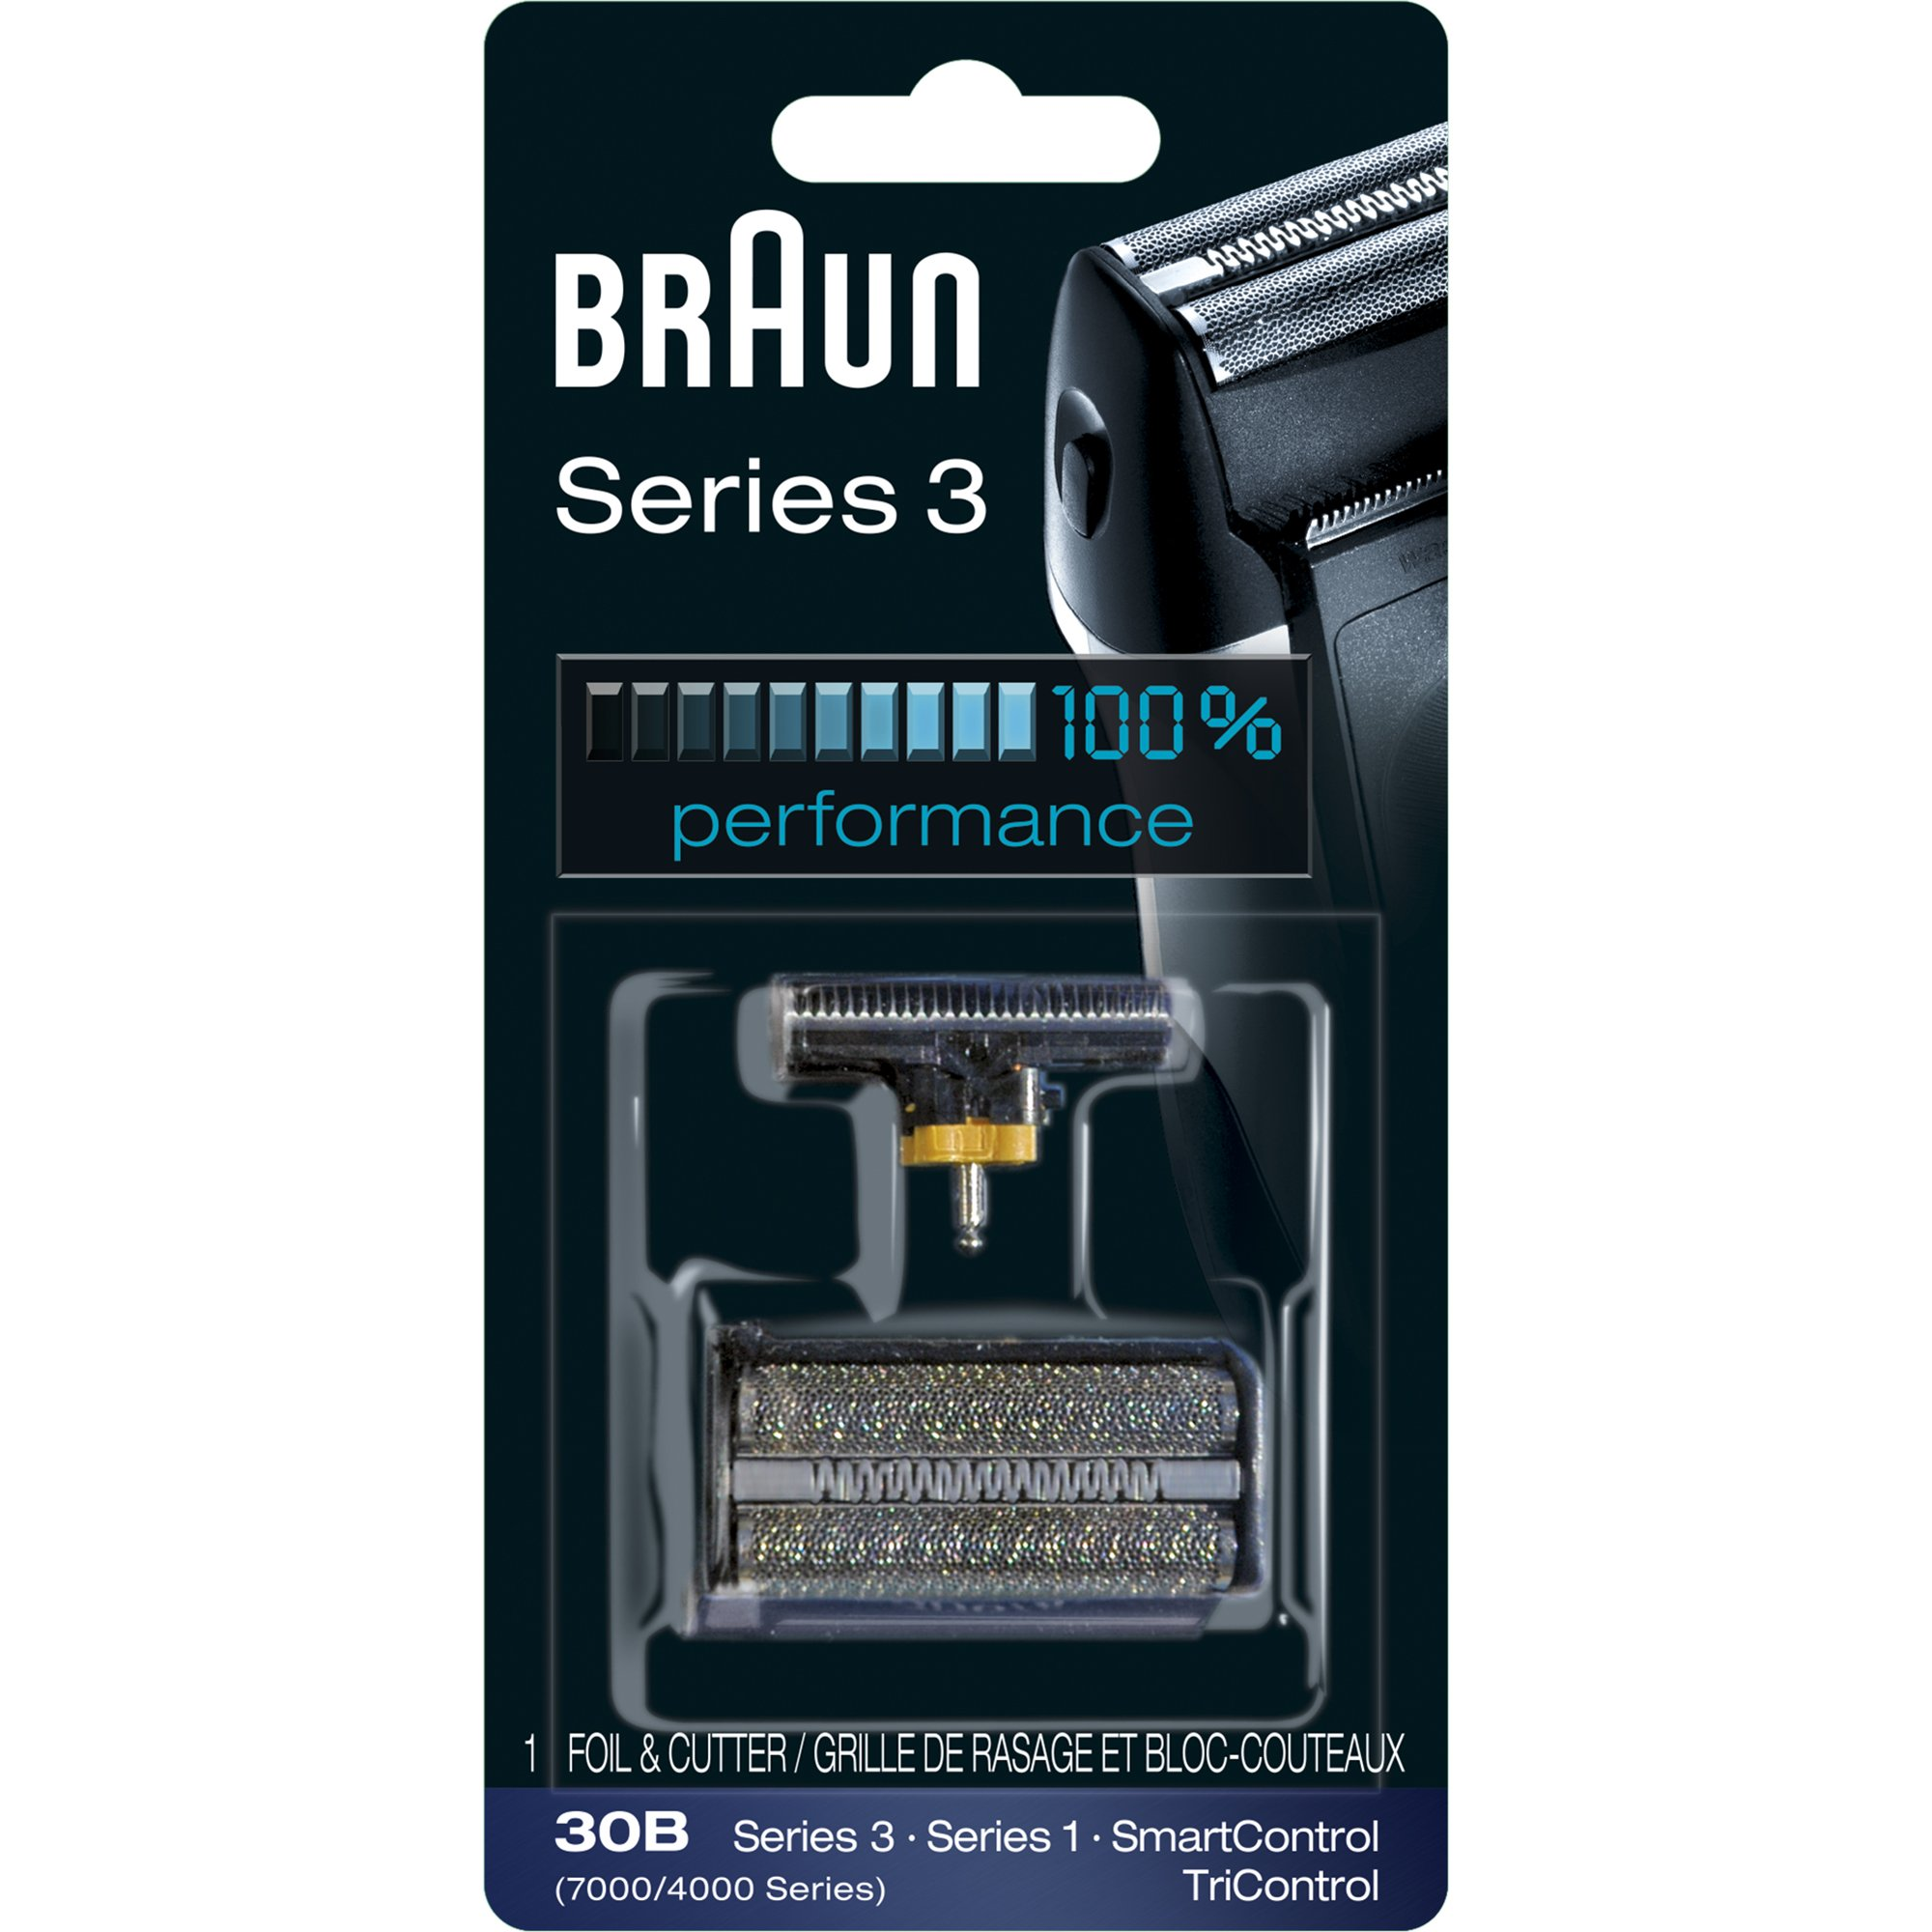 Braun Series 3 30B Foil & Cutter Replacement Head, Compatible with Previous Generation SmartControl,